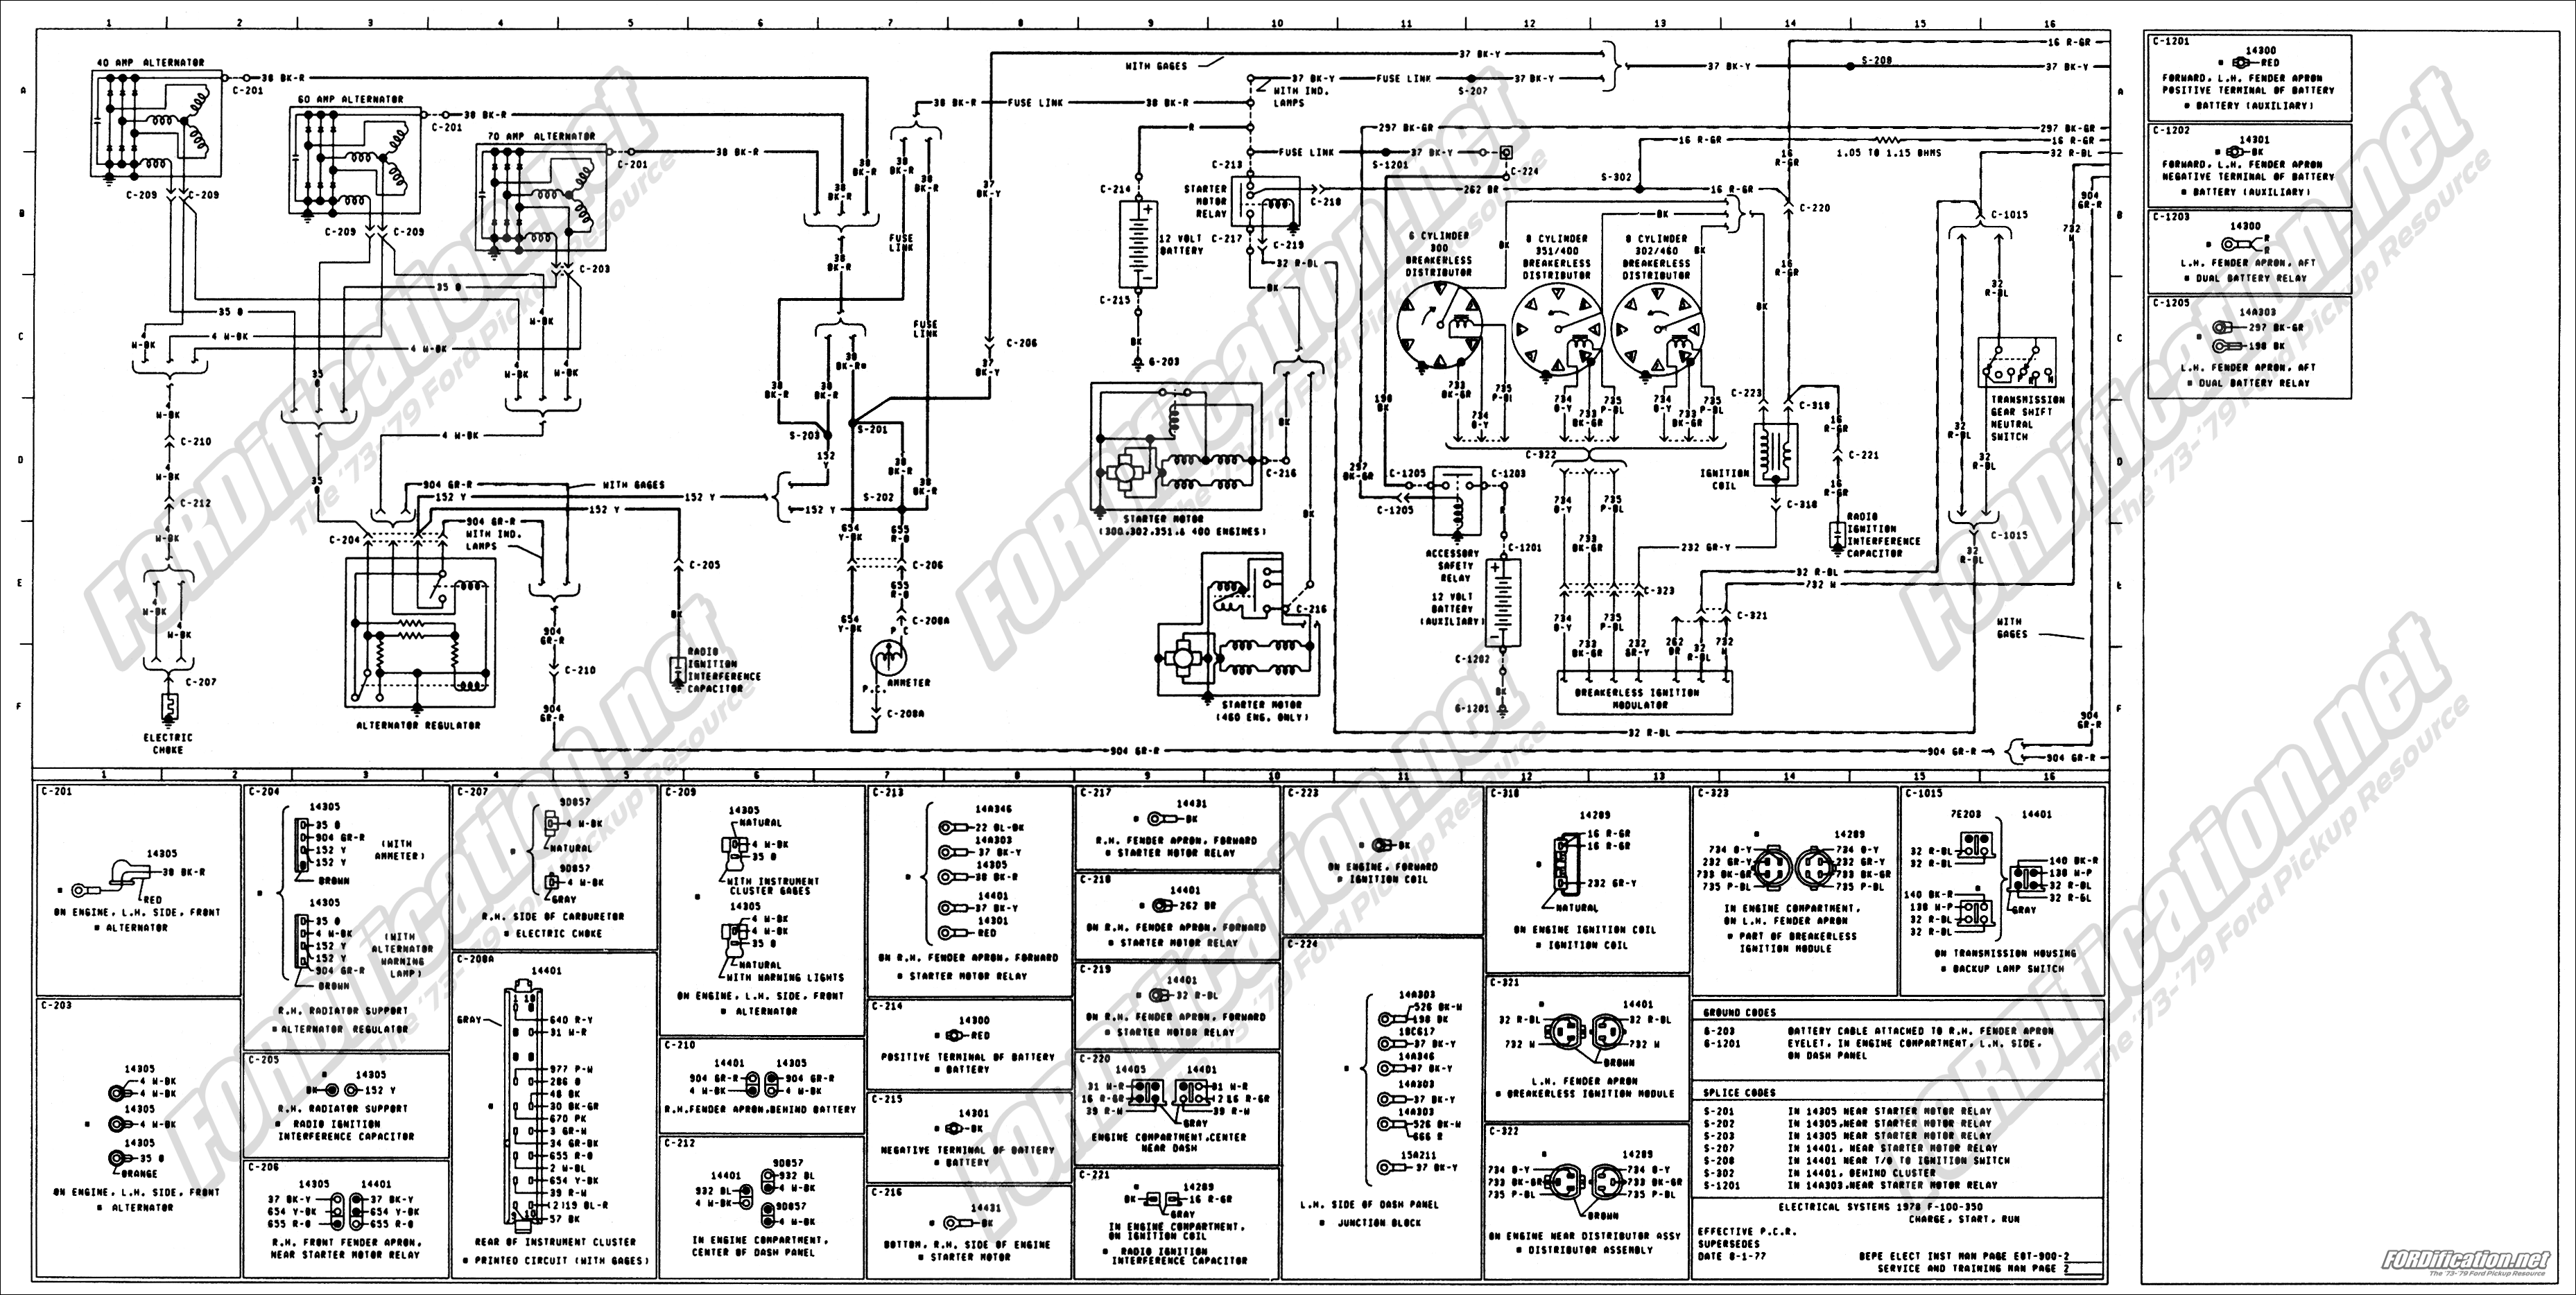 wire 1994 f150 engine diagram 1994 image wiring diagram heater hose diagram ford bronco forum together similiar 2005 ford f 150 engine diagram keywords